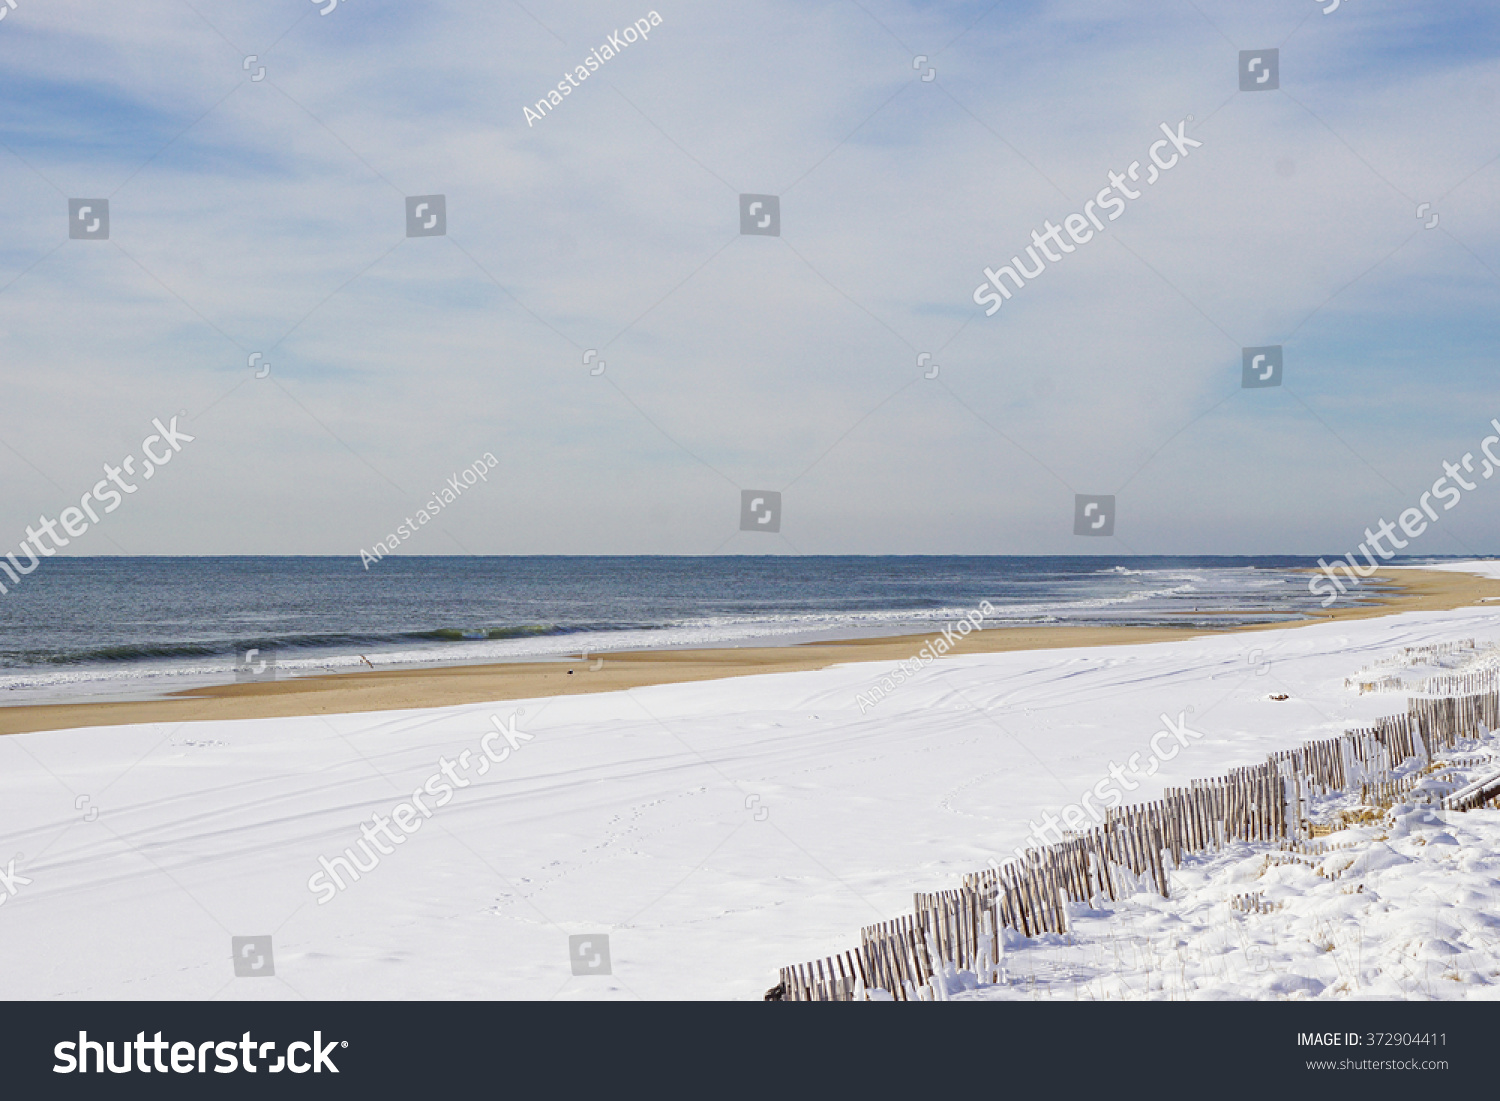 Atlantic ocean waves on the beach at hamptons long island new york suffolk